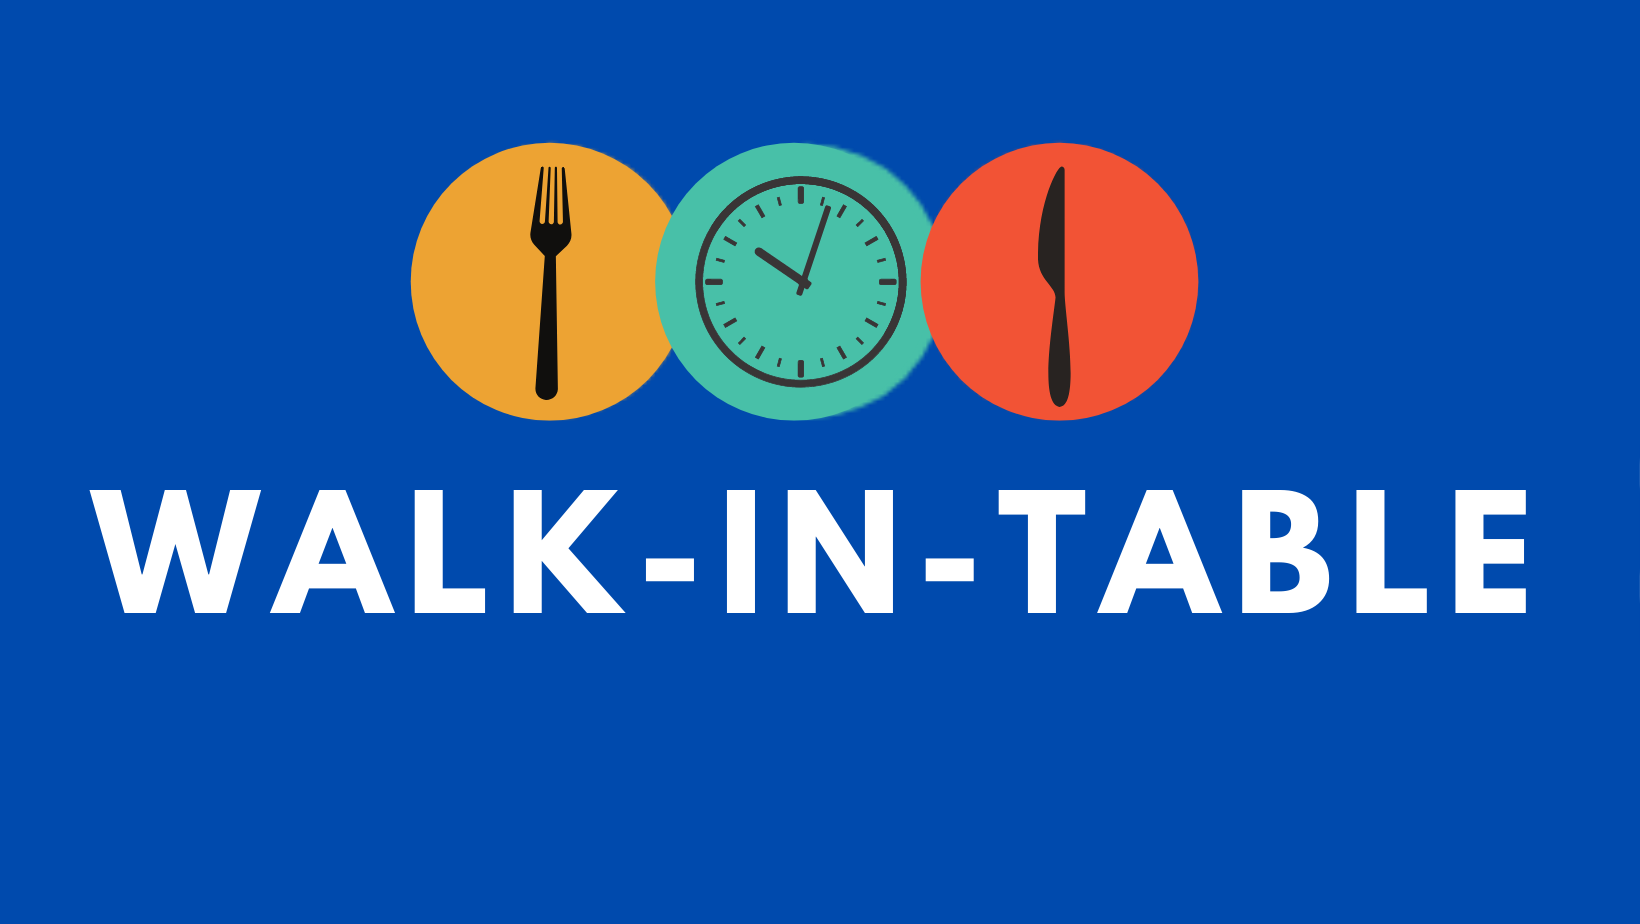 Walk-in-table launches its unique waiting list solution that makes scheduling a breeze